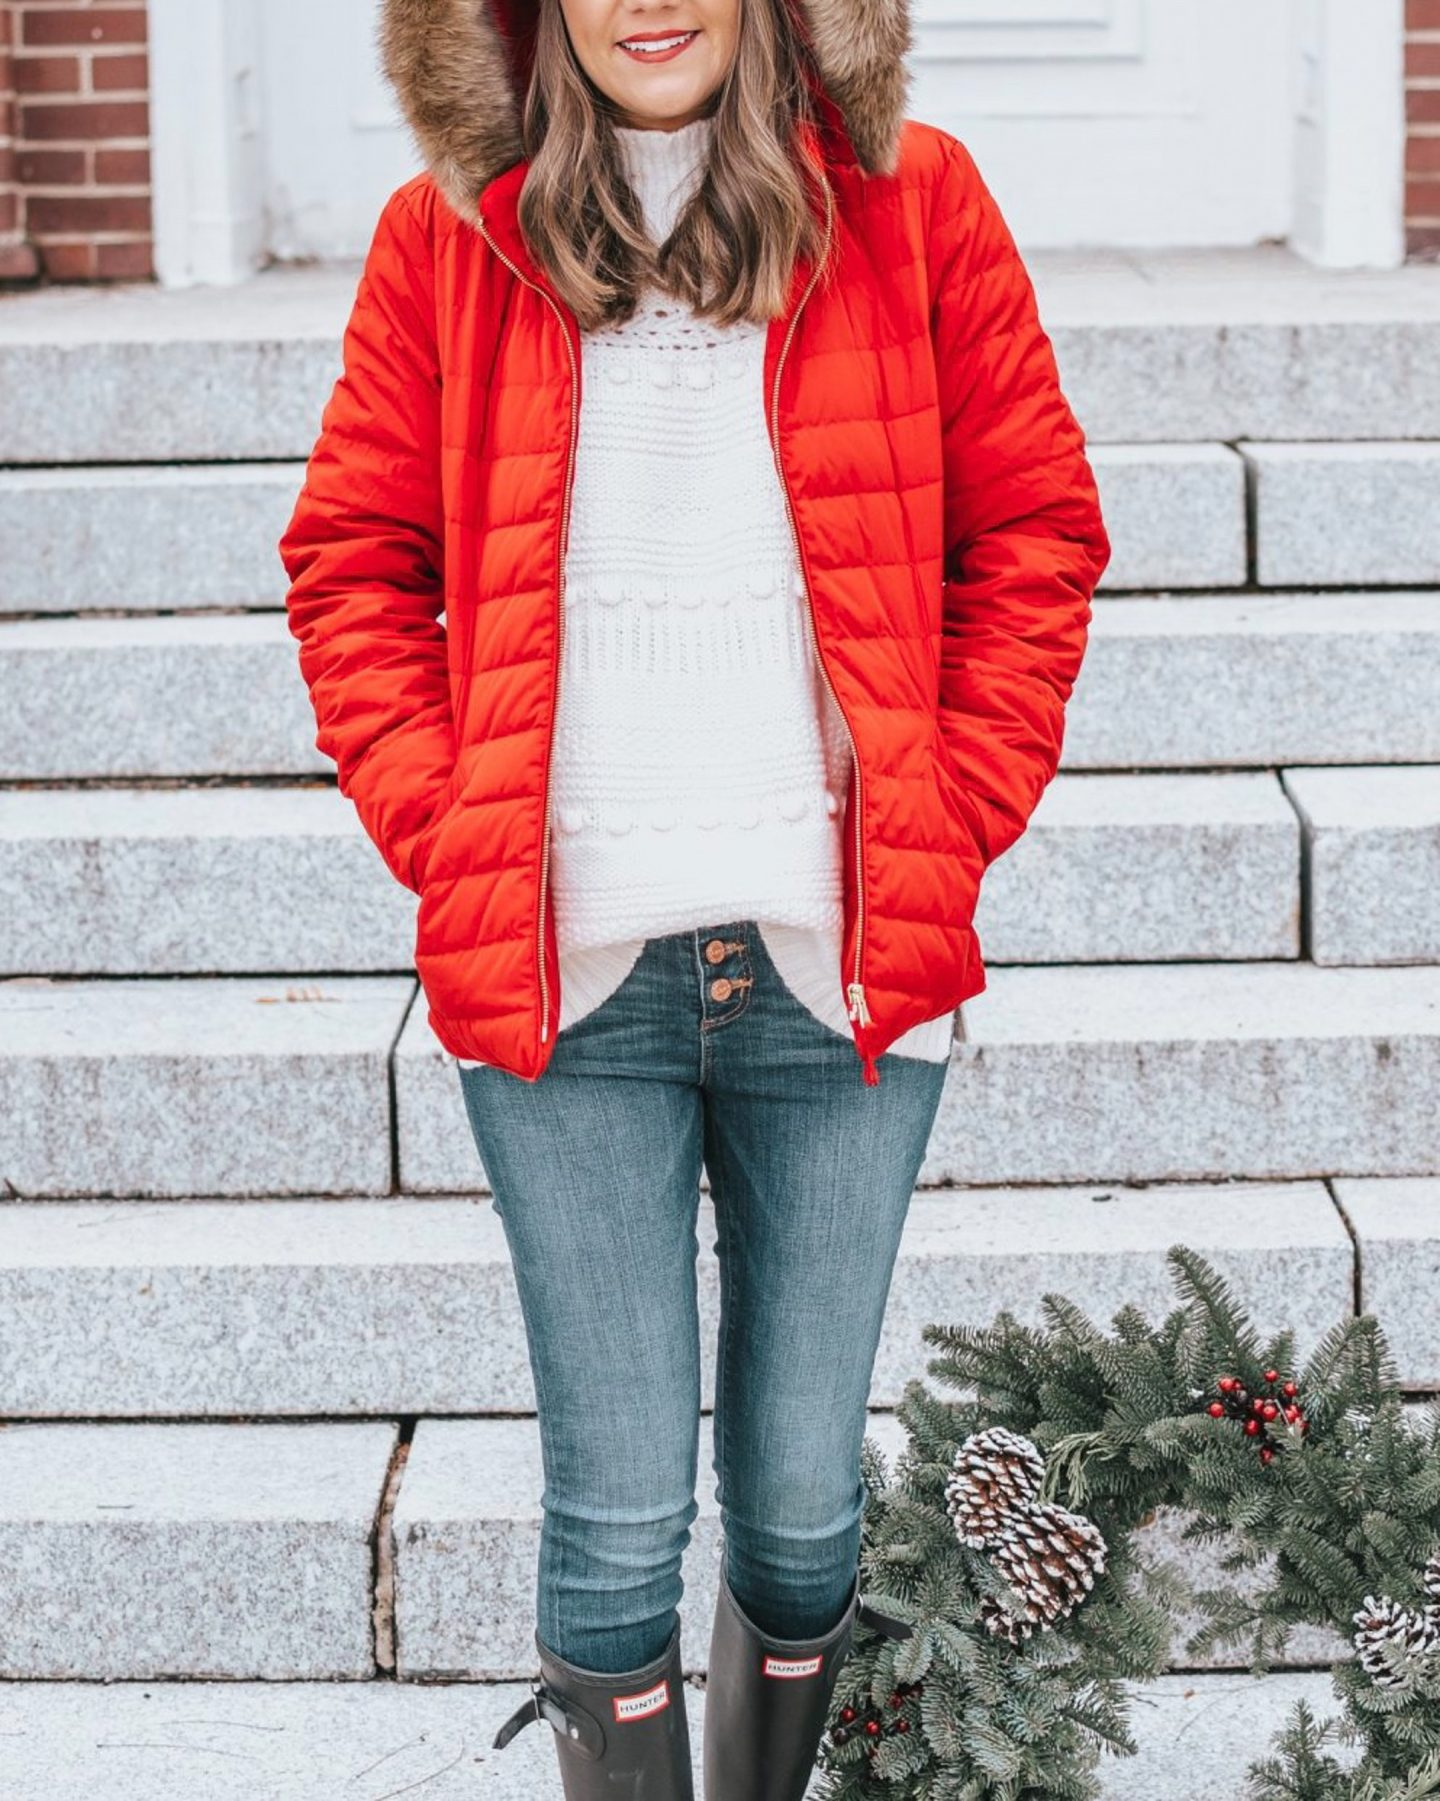 affordable winter coats, winter fashion, stylish and warm coats, 5 coats you need for winter